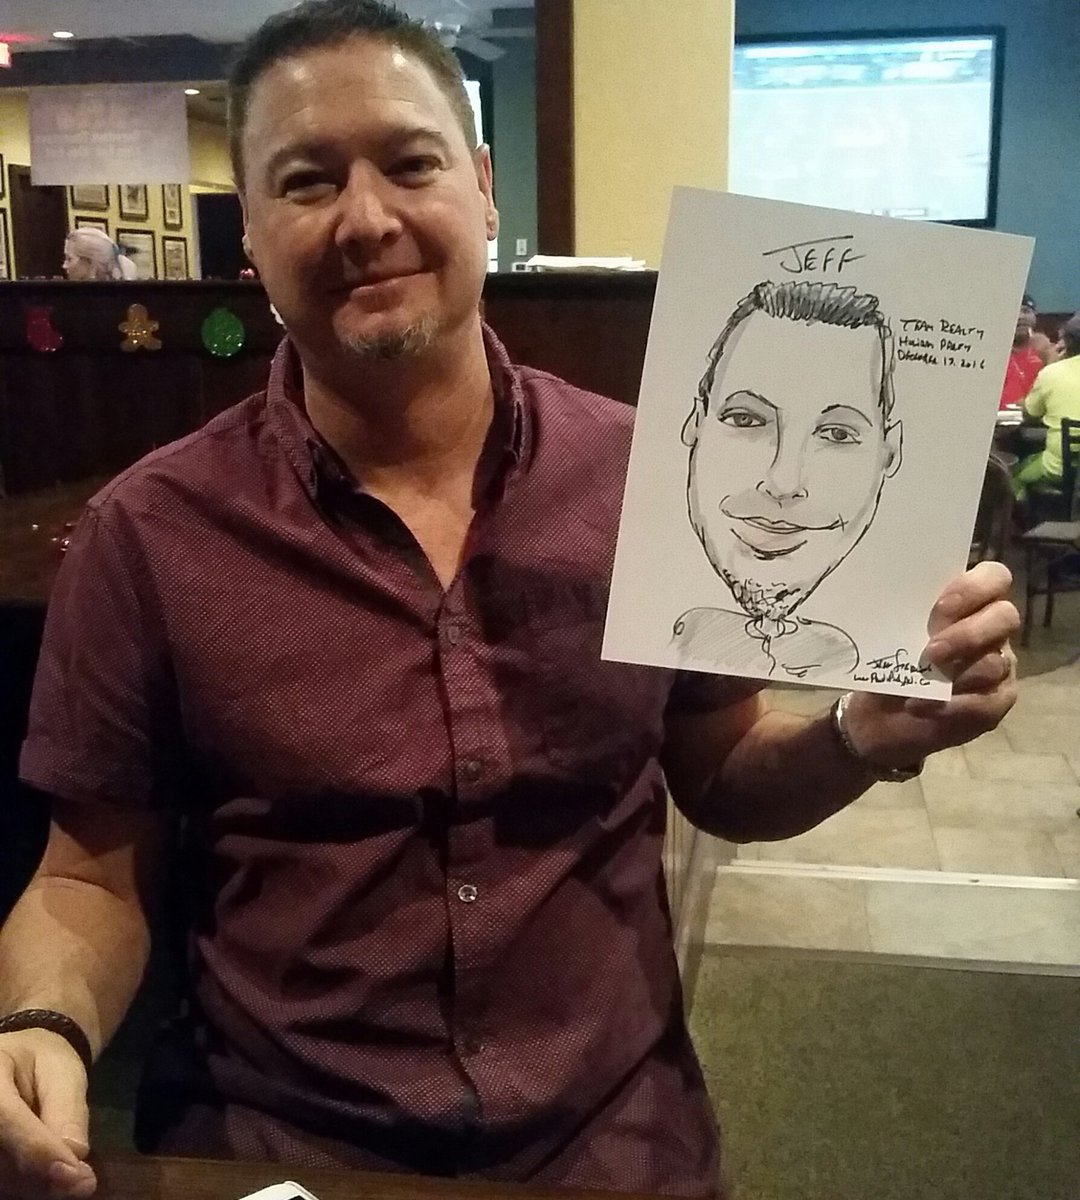 #Realtors #RealEstateAgents #HolidayParty #ChristmasParty at #BrusRoom in #CoralSprings near #Tamarac and #ParklandFlorida included #Caricature Entertainment by #FortLauderdaleCaricatureArtist Jeff Sterling of